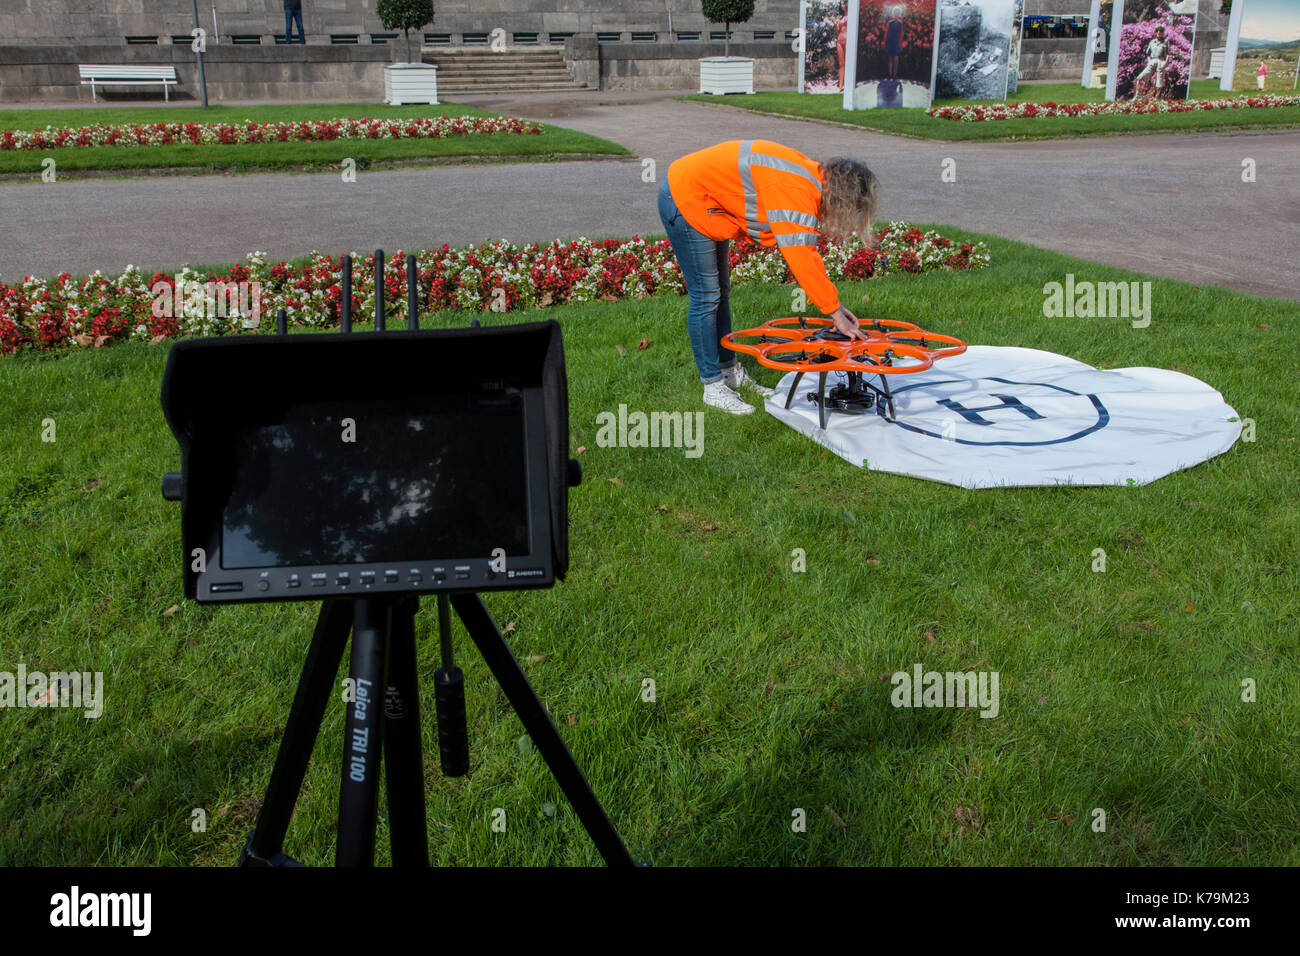 Surveying and Cadastre Office uses a drone for surveying - Stock Image